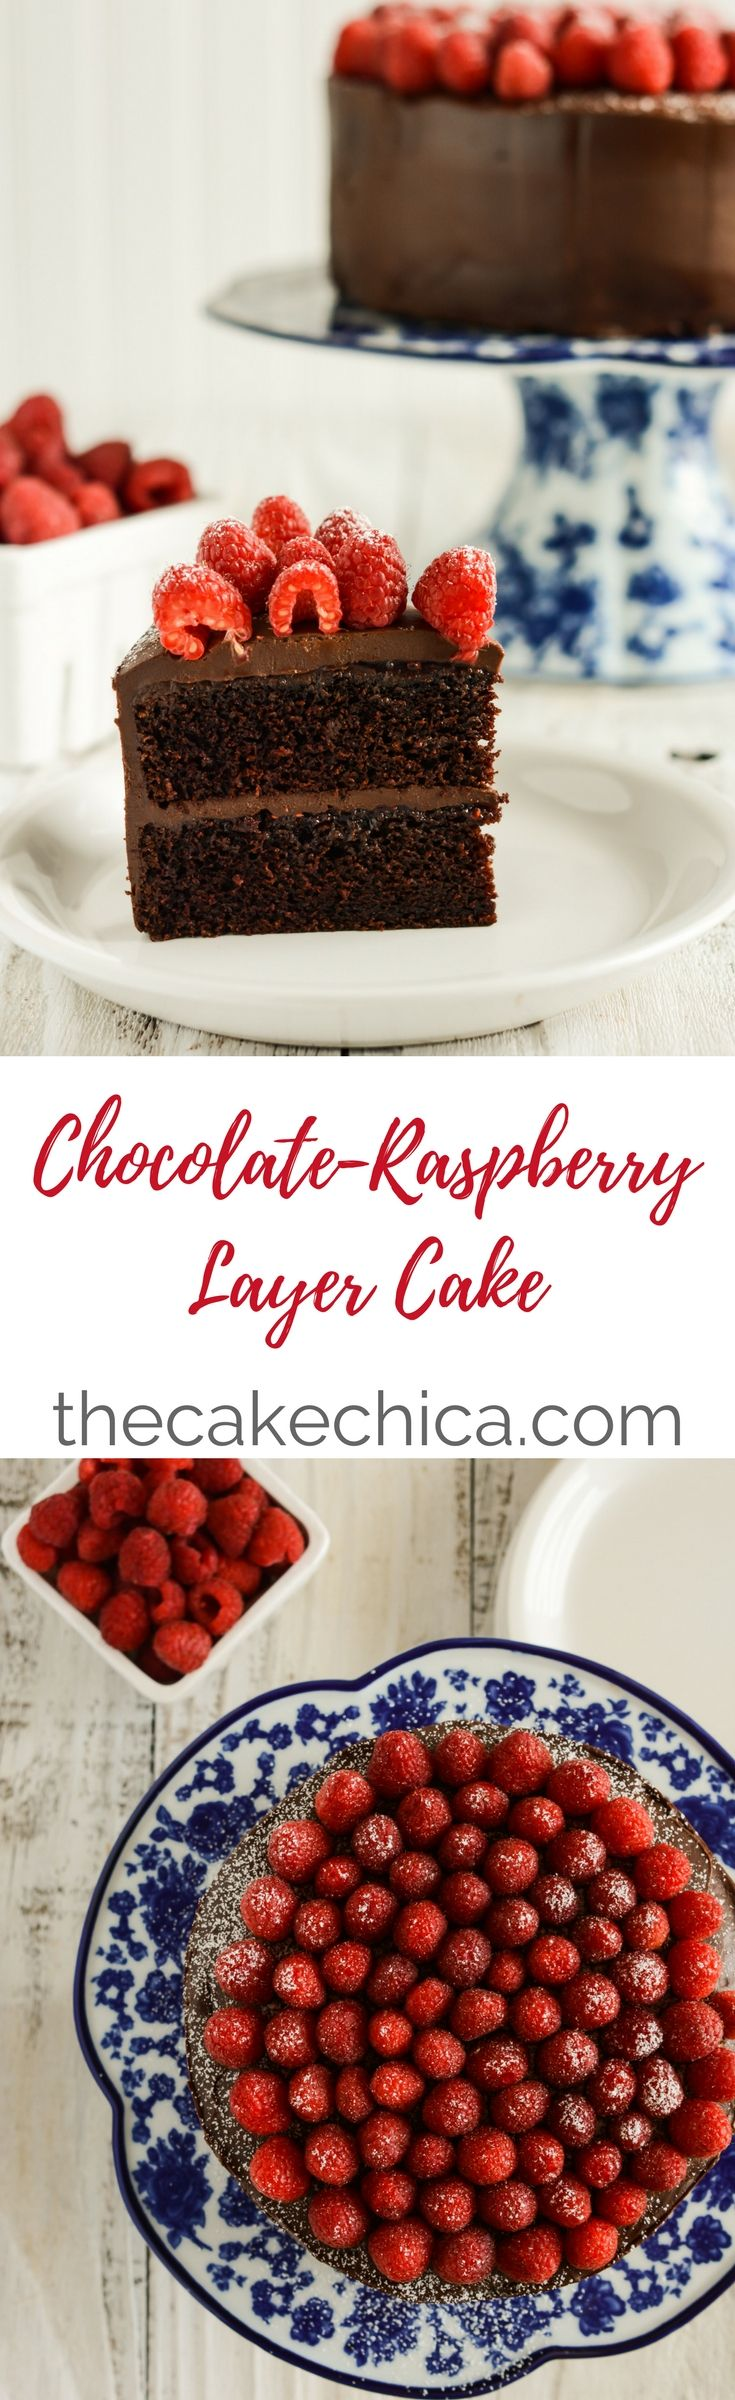 This Chocolate Raspberry Layer Cake is not only beautiful, but also tasty! Chocolate and raspberry is the perfect combination for any dessert.